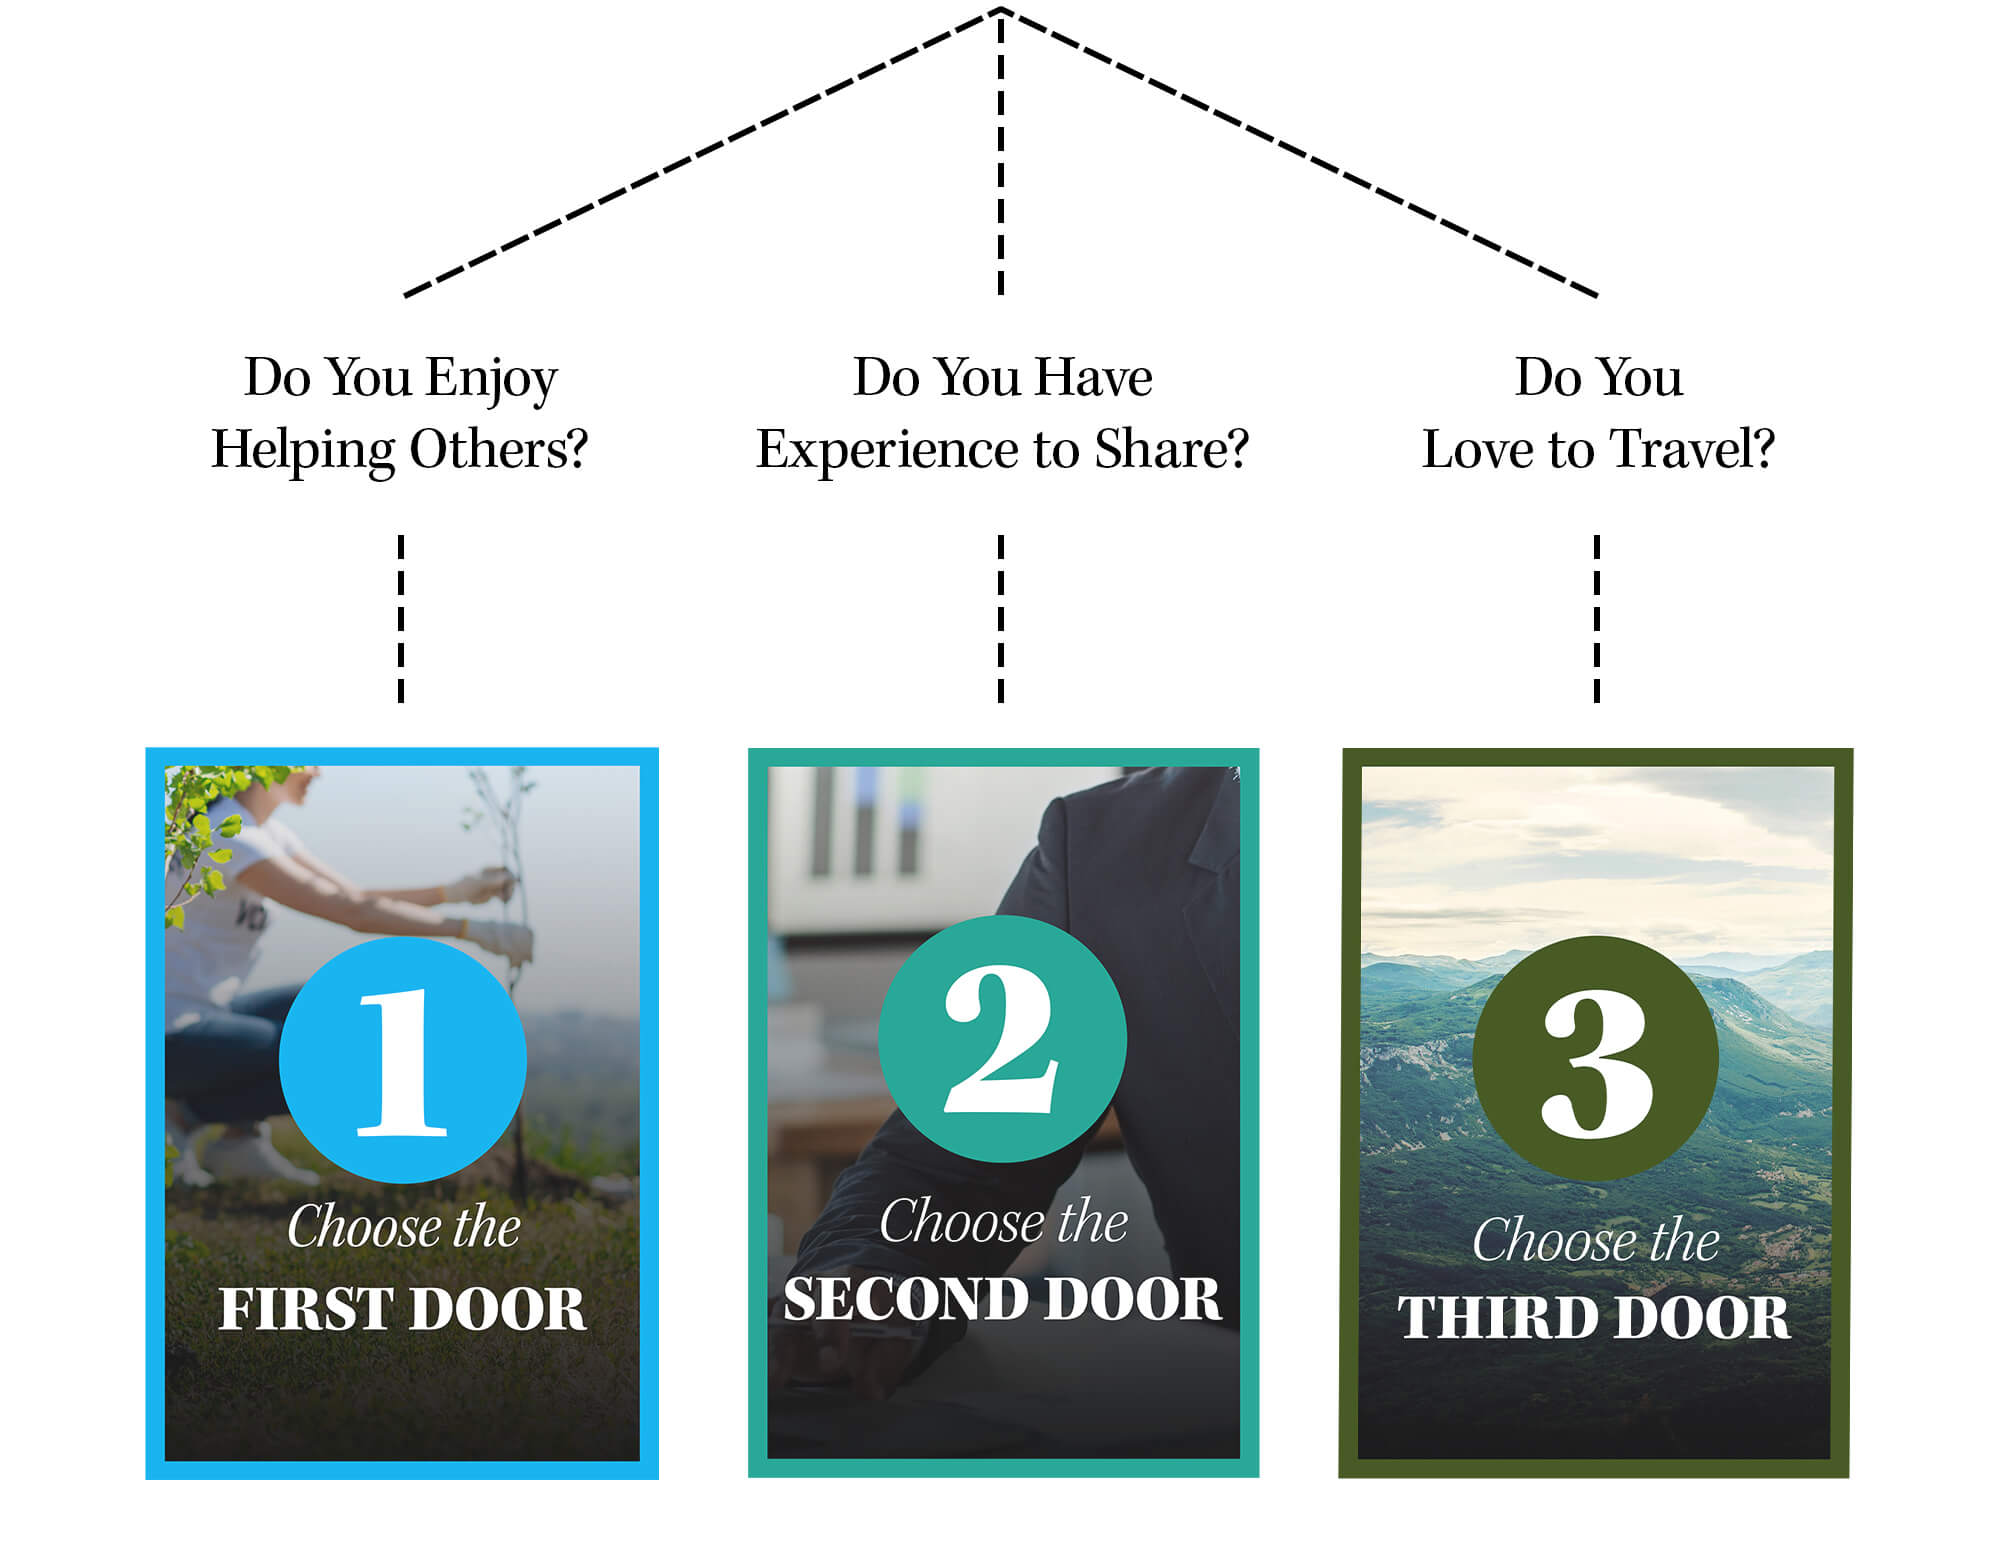 Do You Enjoy Helping Others? Choose the First Door. Do You Have Experience to share? Choose the Second Door. Do You Love to Travel?  Choose the Third Door